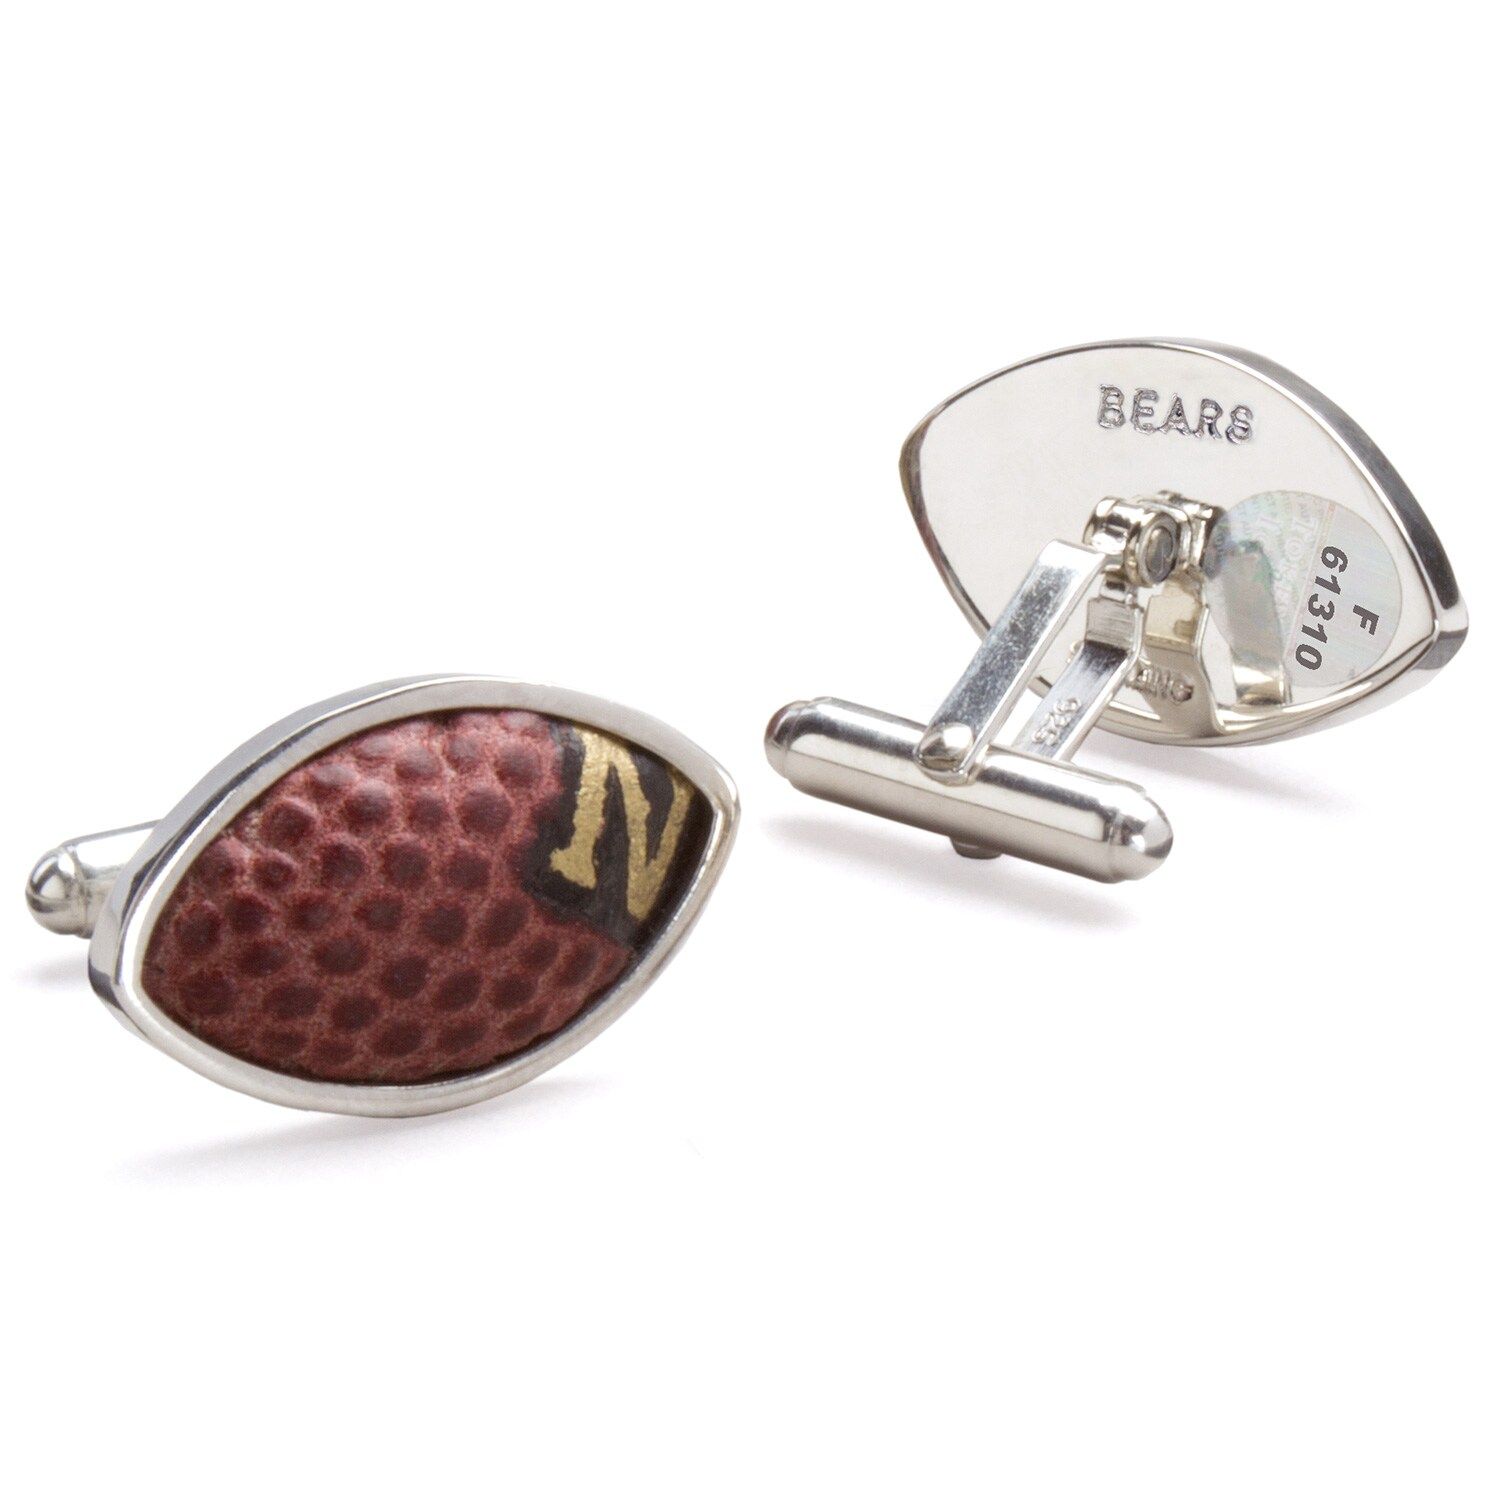 Chicago Bears Tokens & Icons Game-Used Football Cuff Links